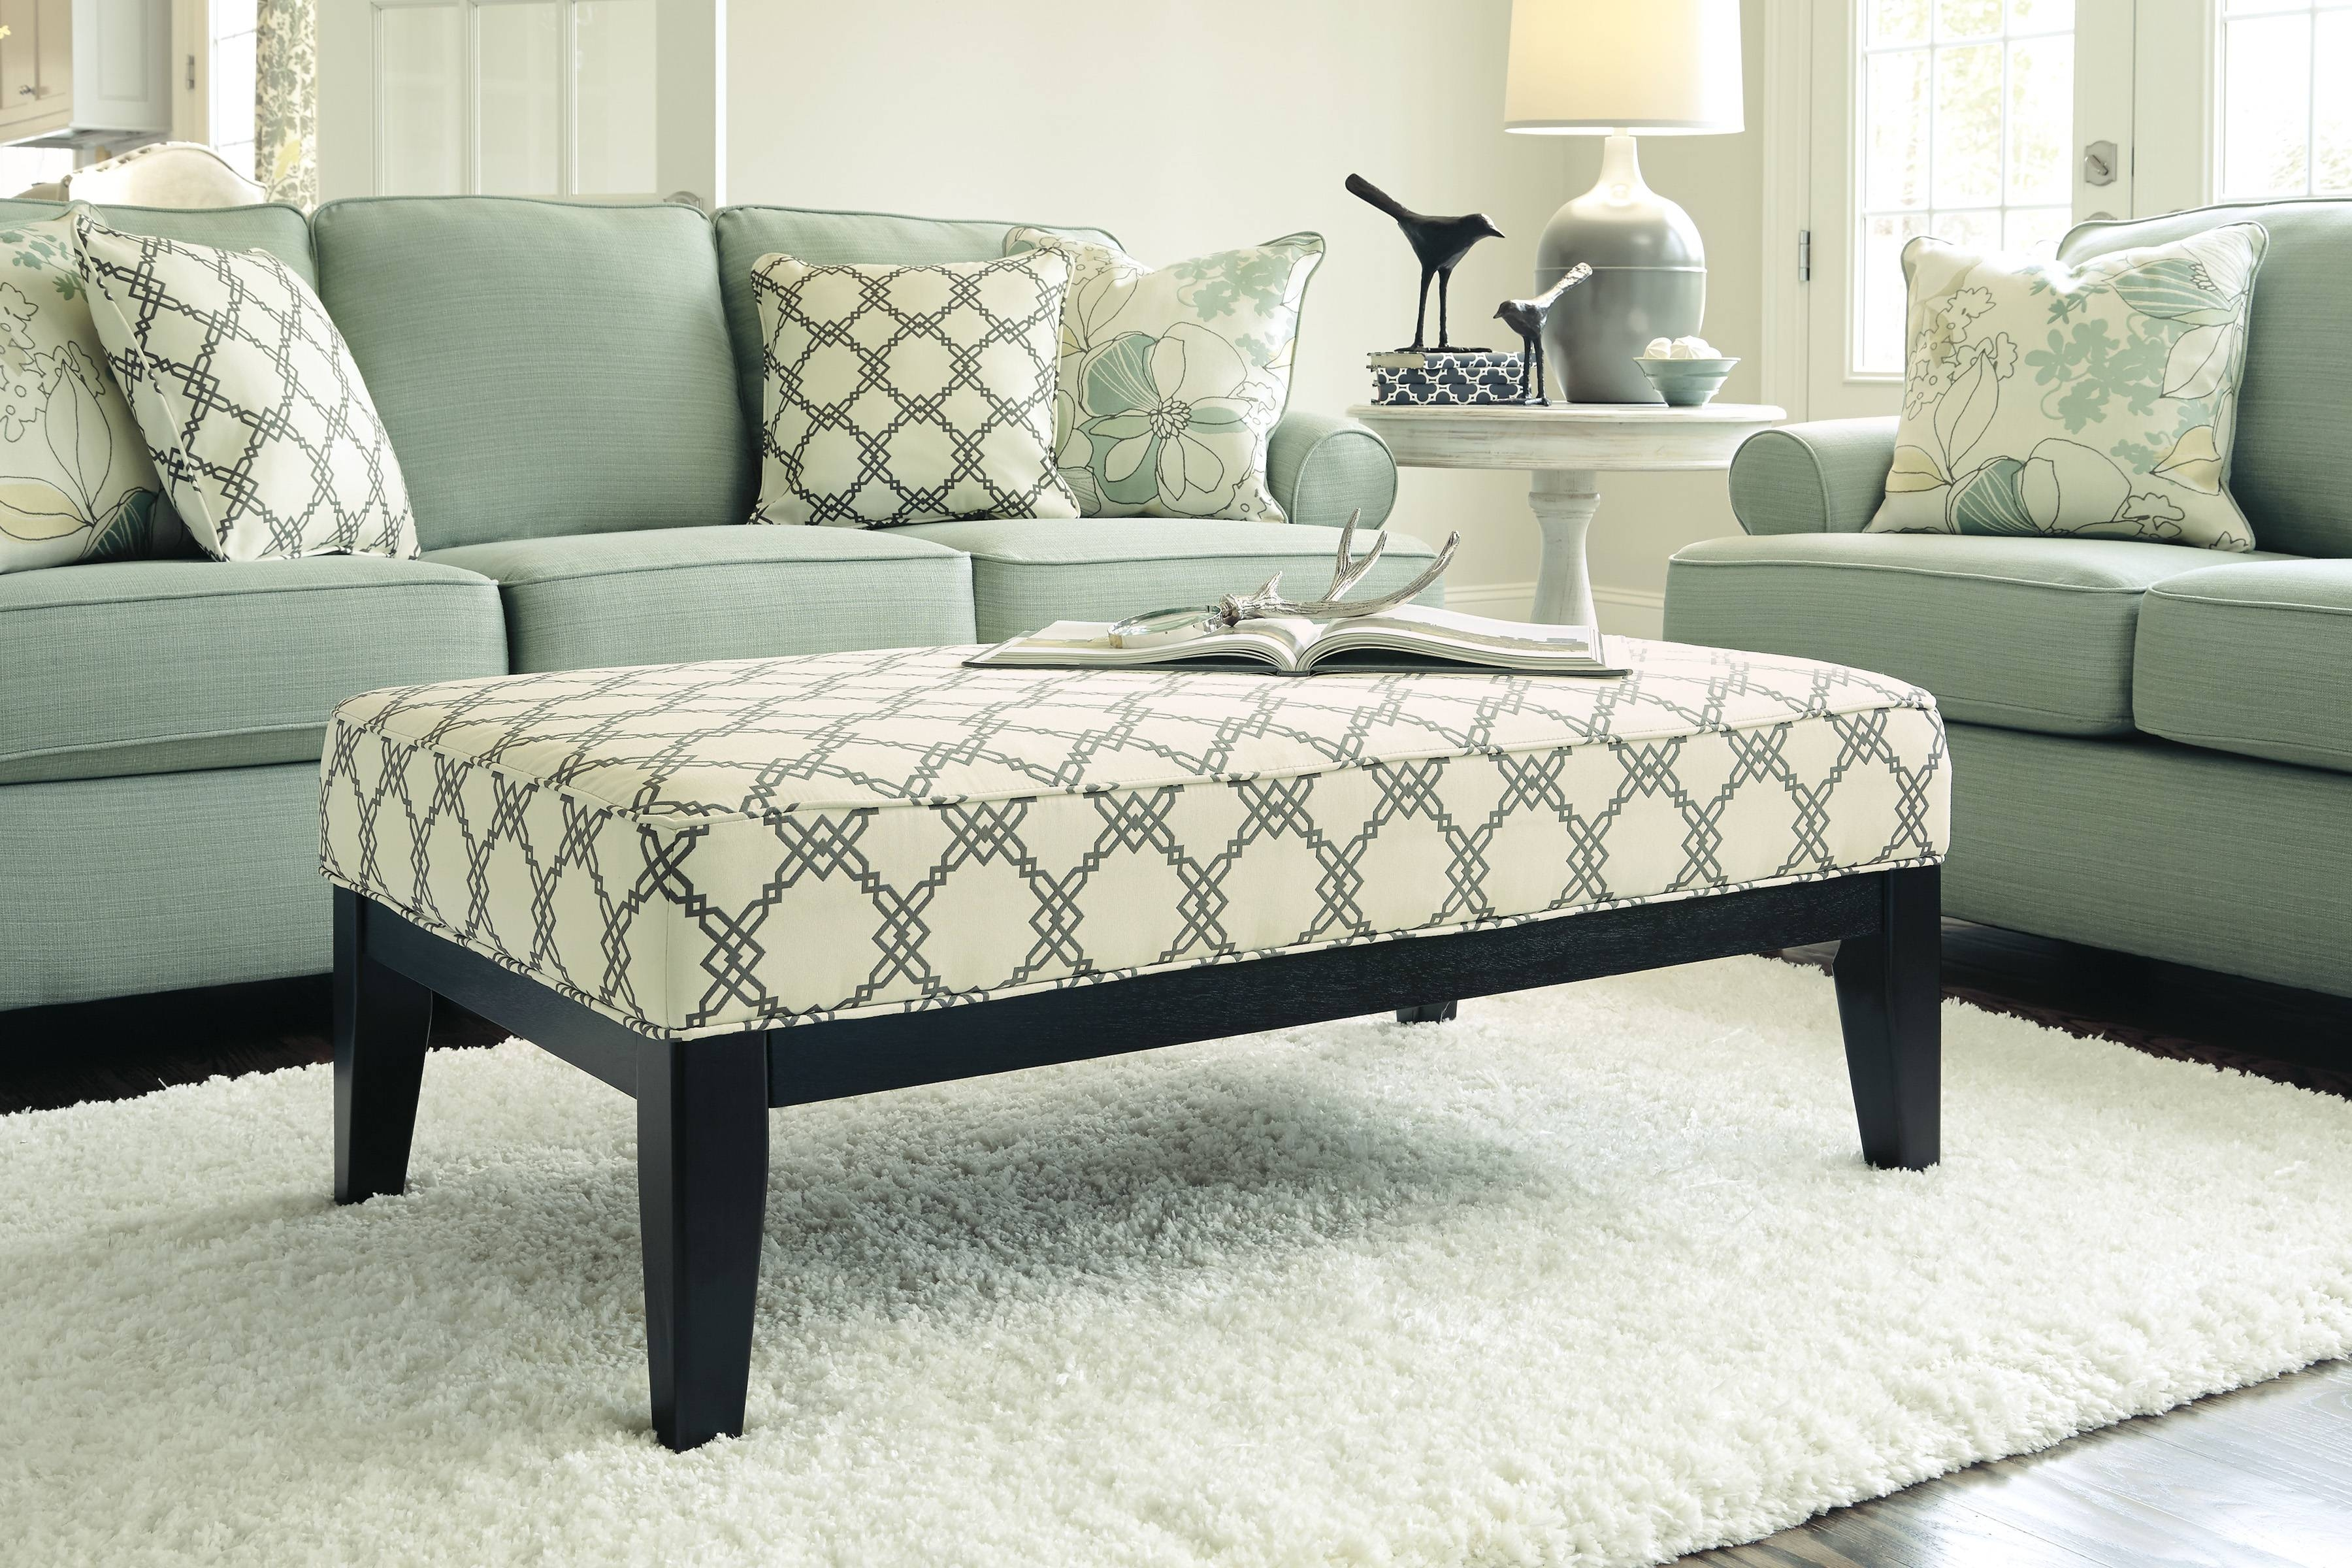 Furniture: Comfortable Deep Seat Sectional For Your Living Room throughout Grey Sofa Chairs (Image 15 of 30)